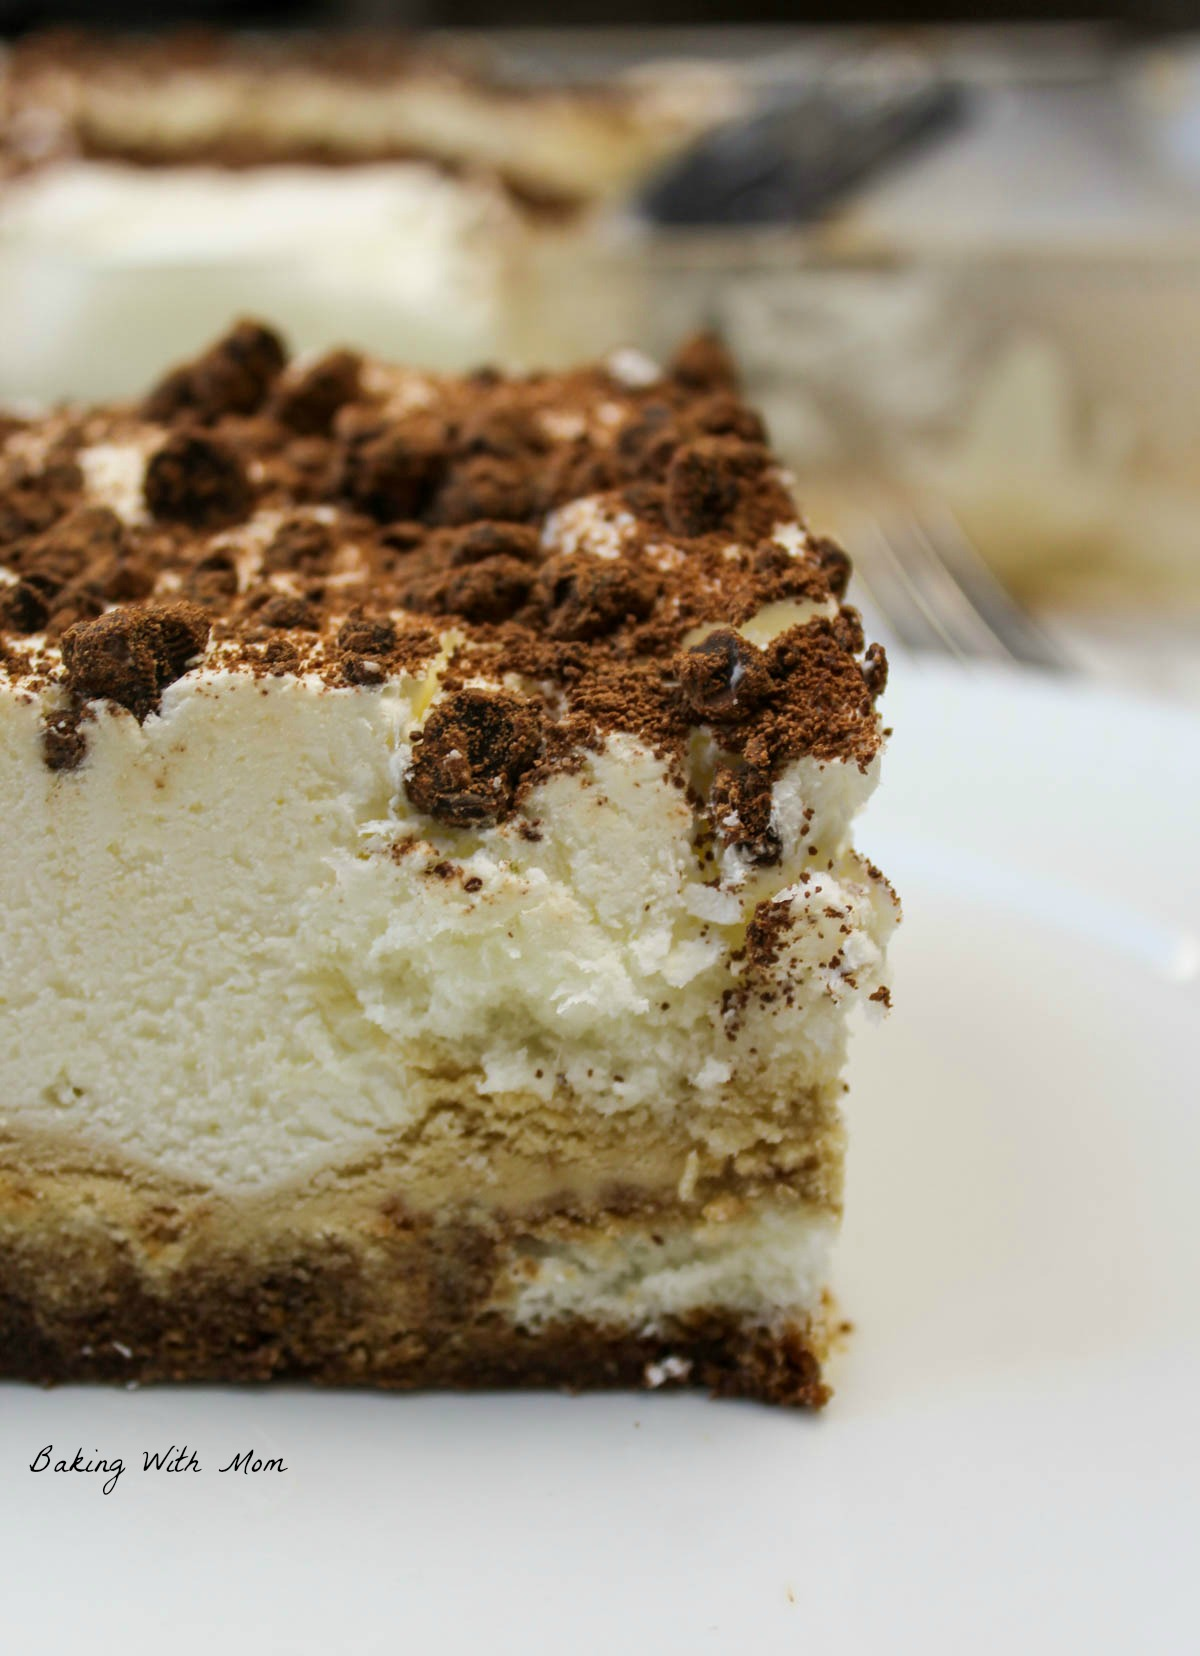 Slice of tiramisu ice cream cake on a white plate with sprinkles of chocolate chips